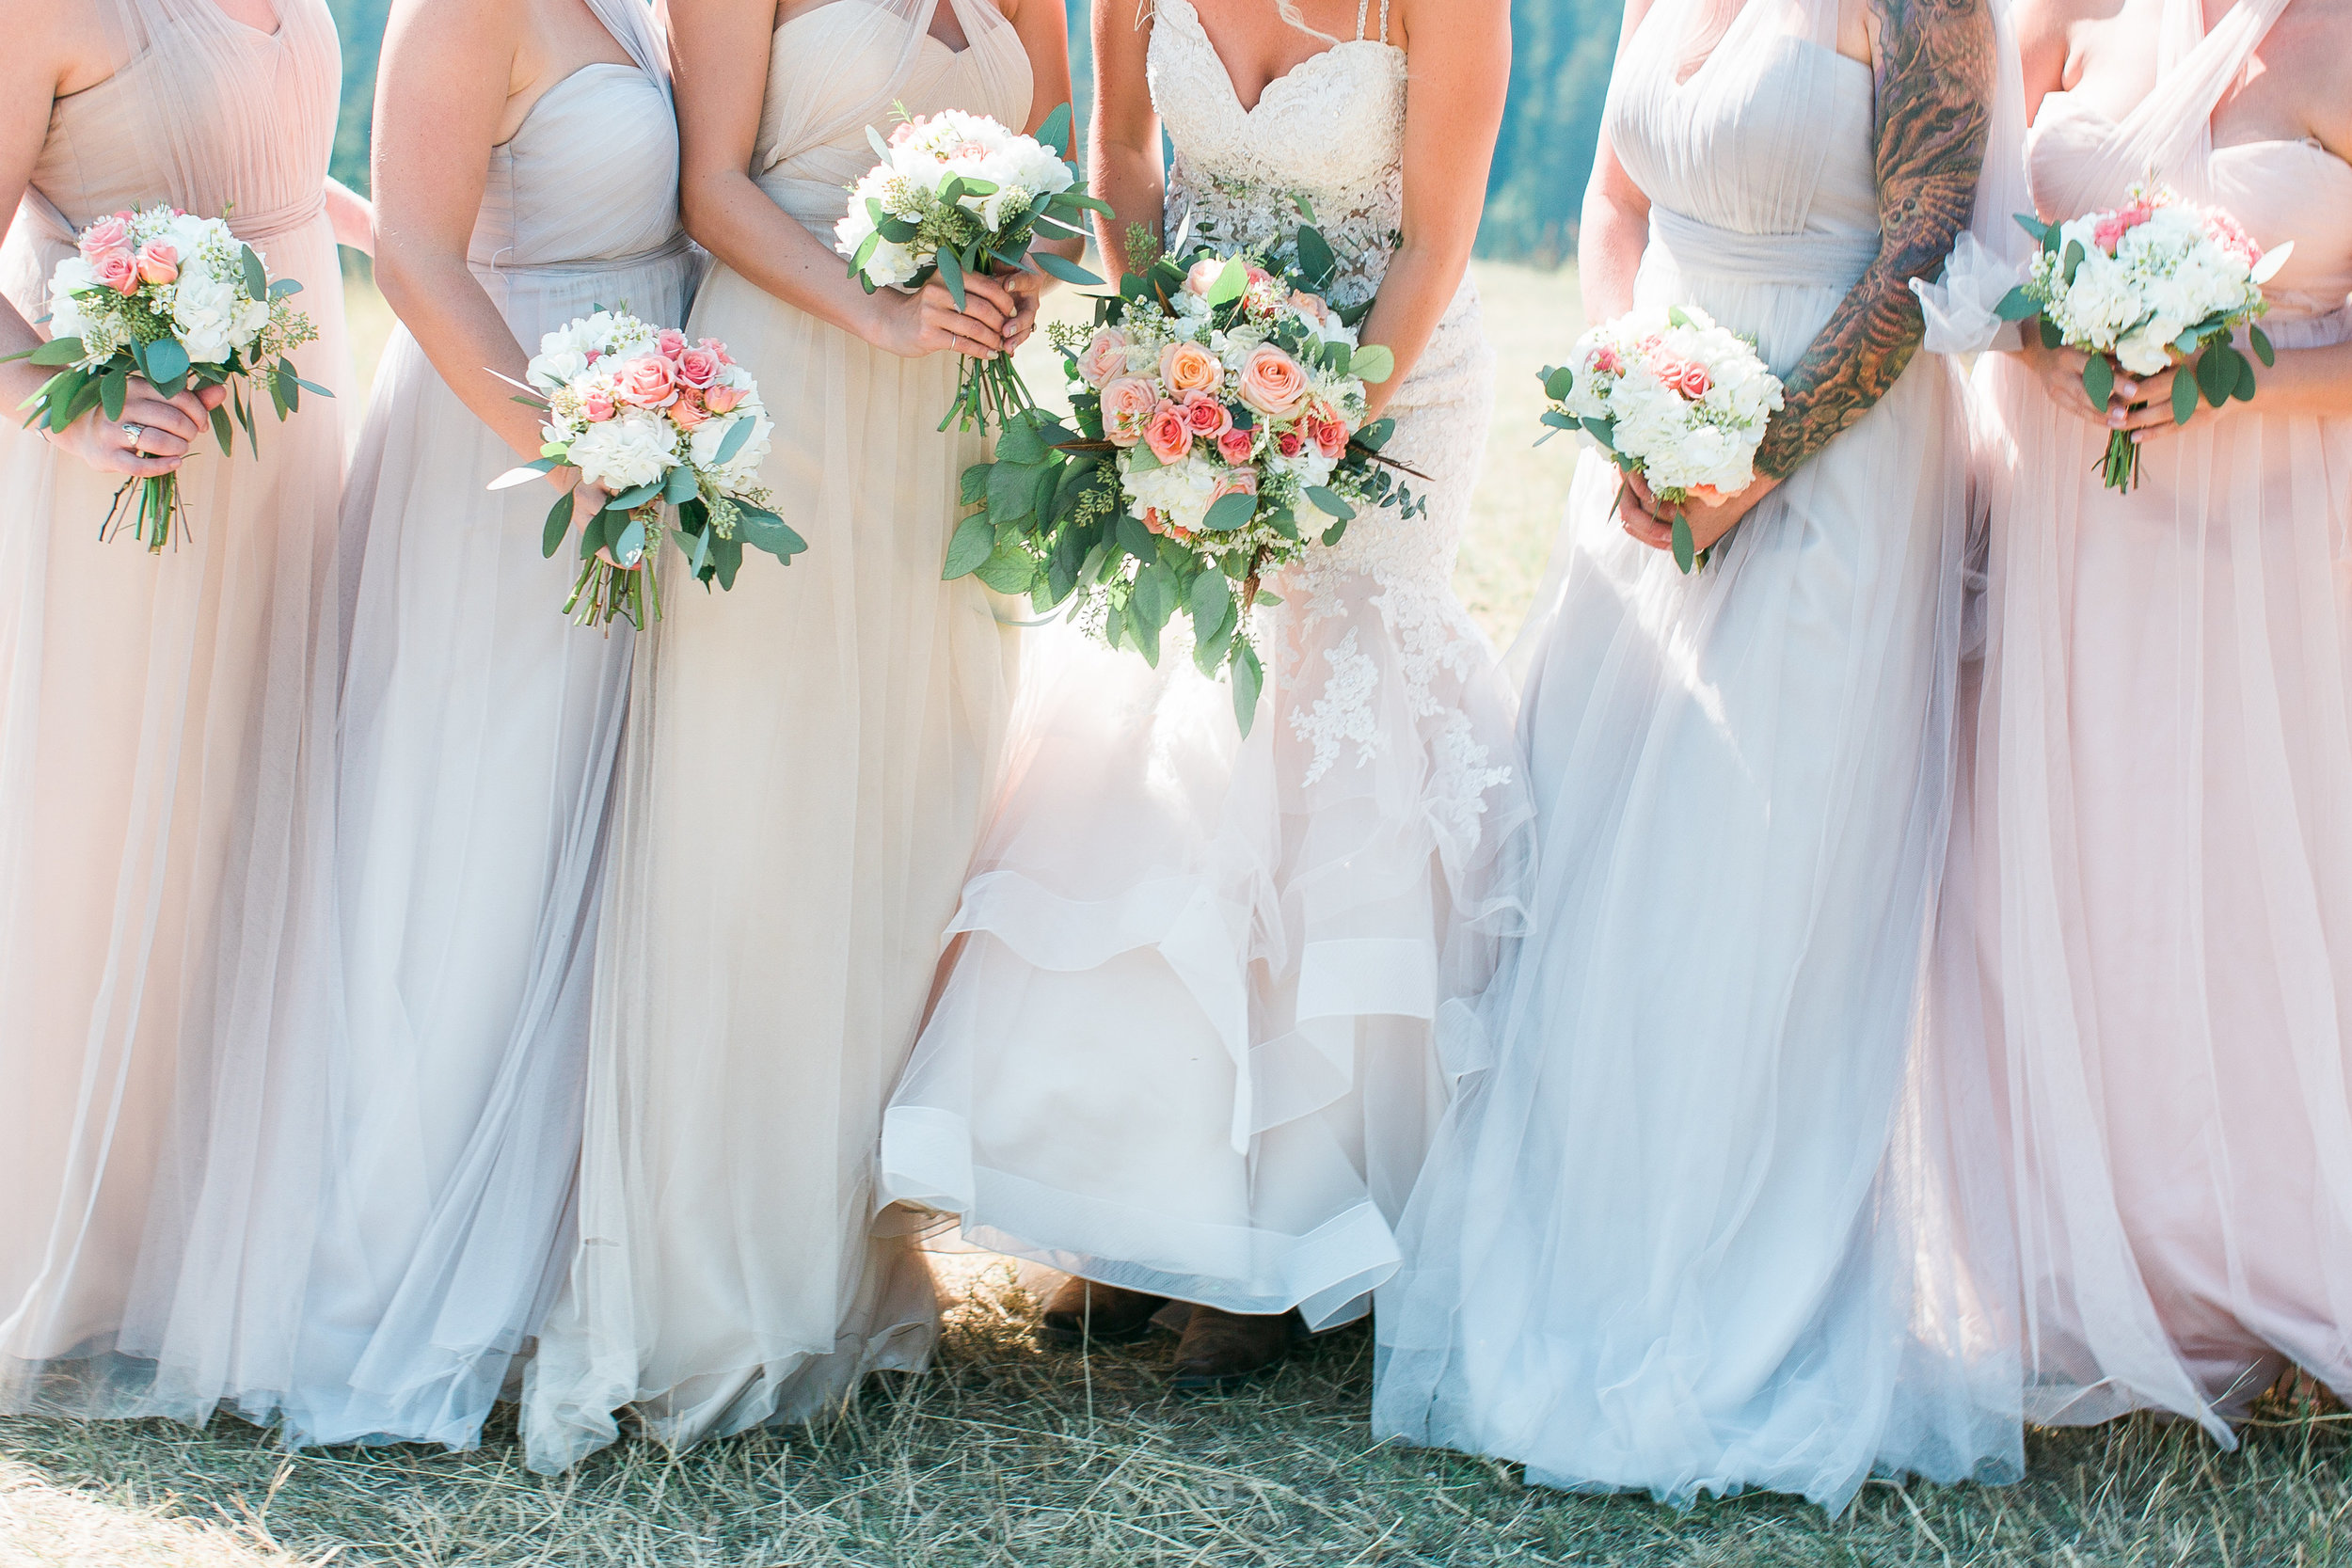 Bridesmaids in blush neutral dresses holding flowers Minnesota wedding photography mallory kiesow photography